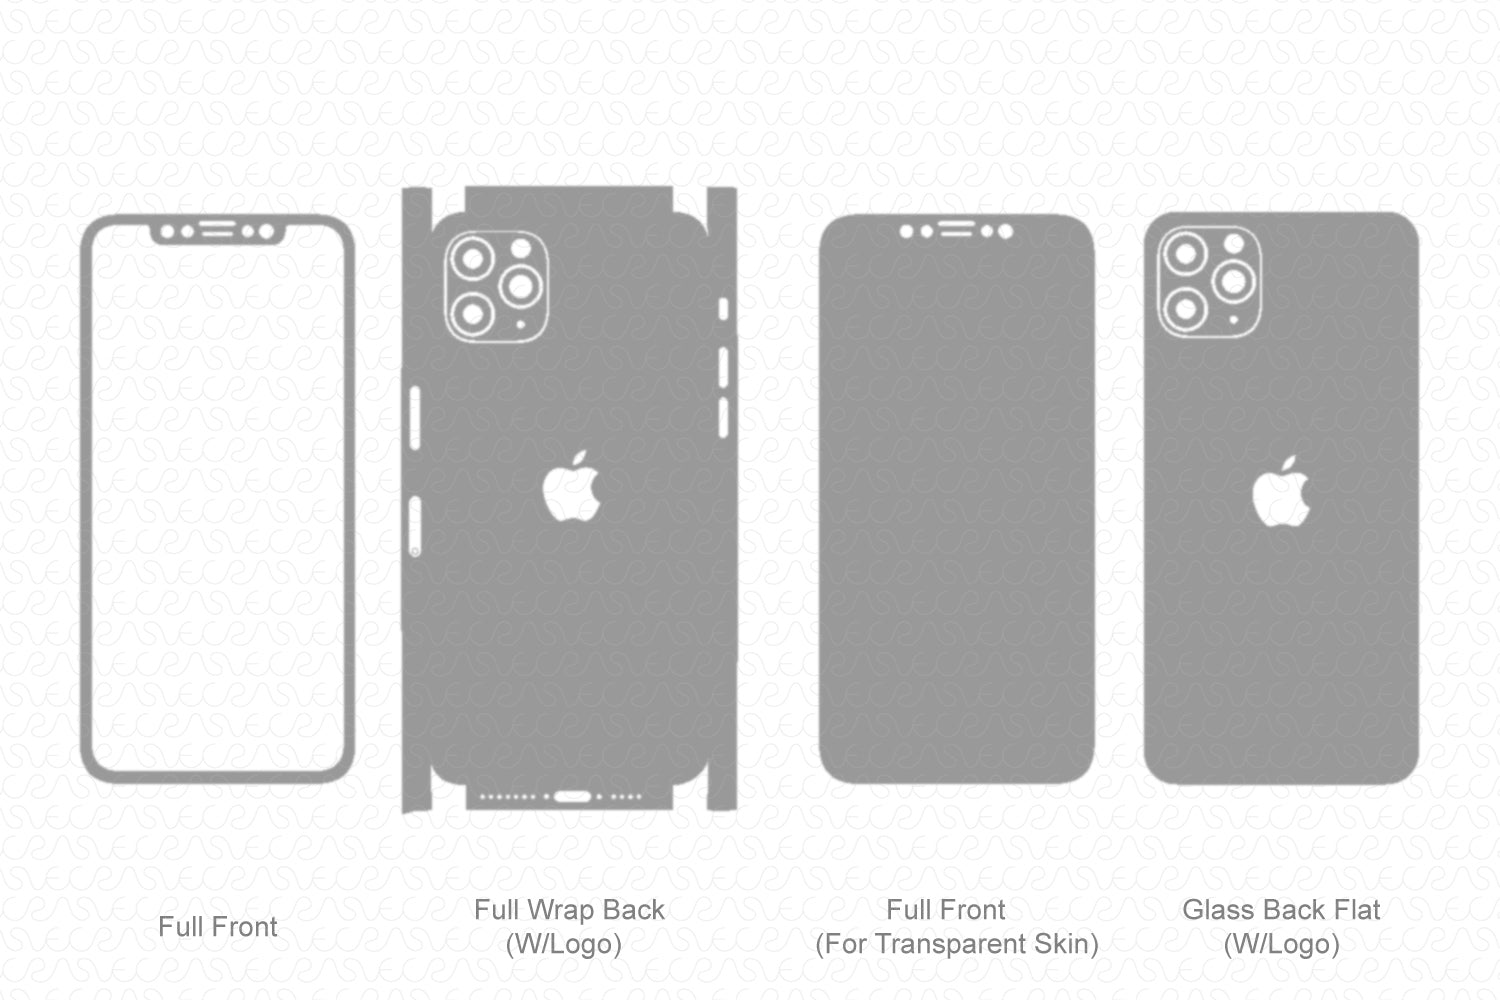 iPhone 11 Pro Max (2019) Skin Template Vector